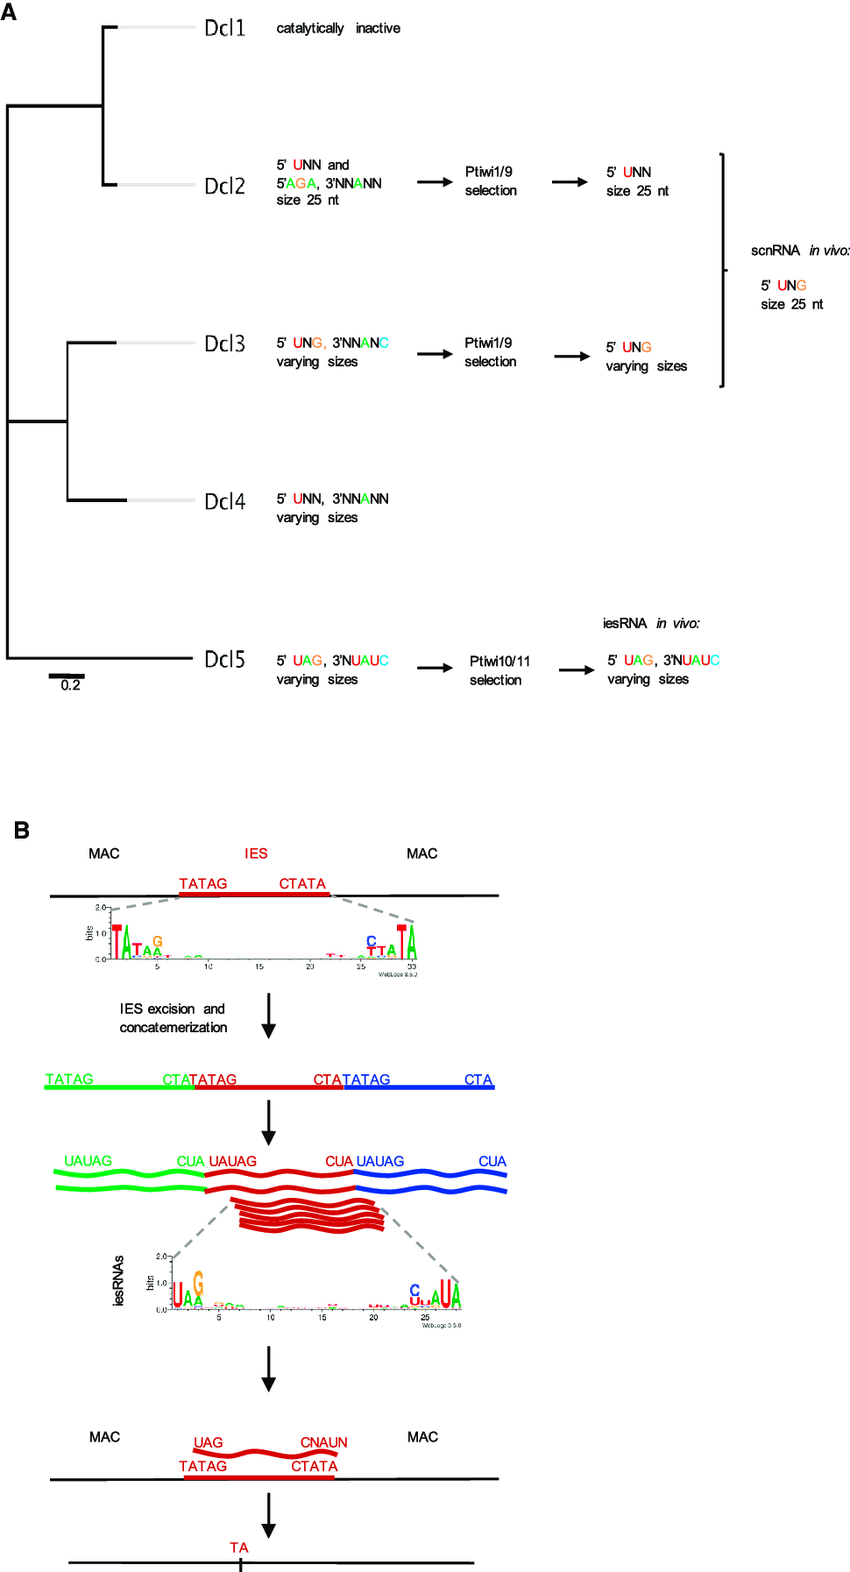 medium resolution of paramecium dicer like cleavage preferences and the role of srna end sequence bias during dna